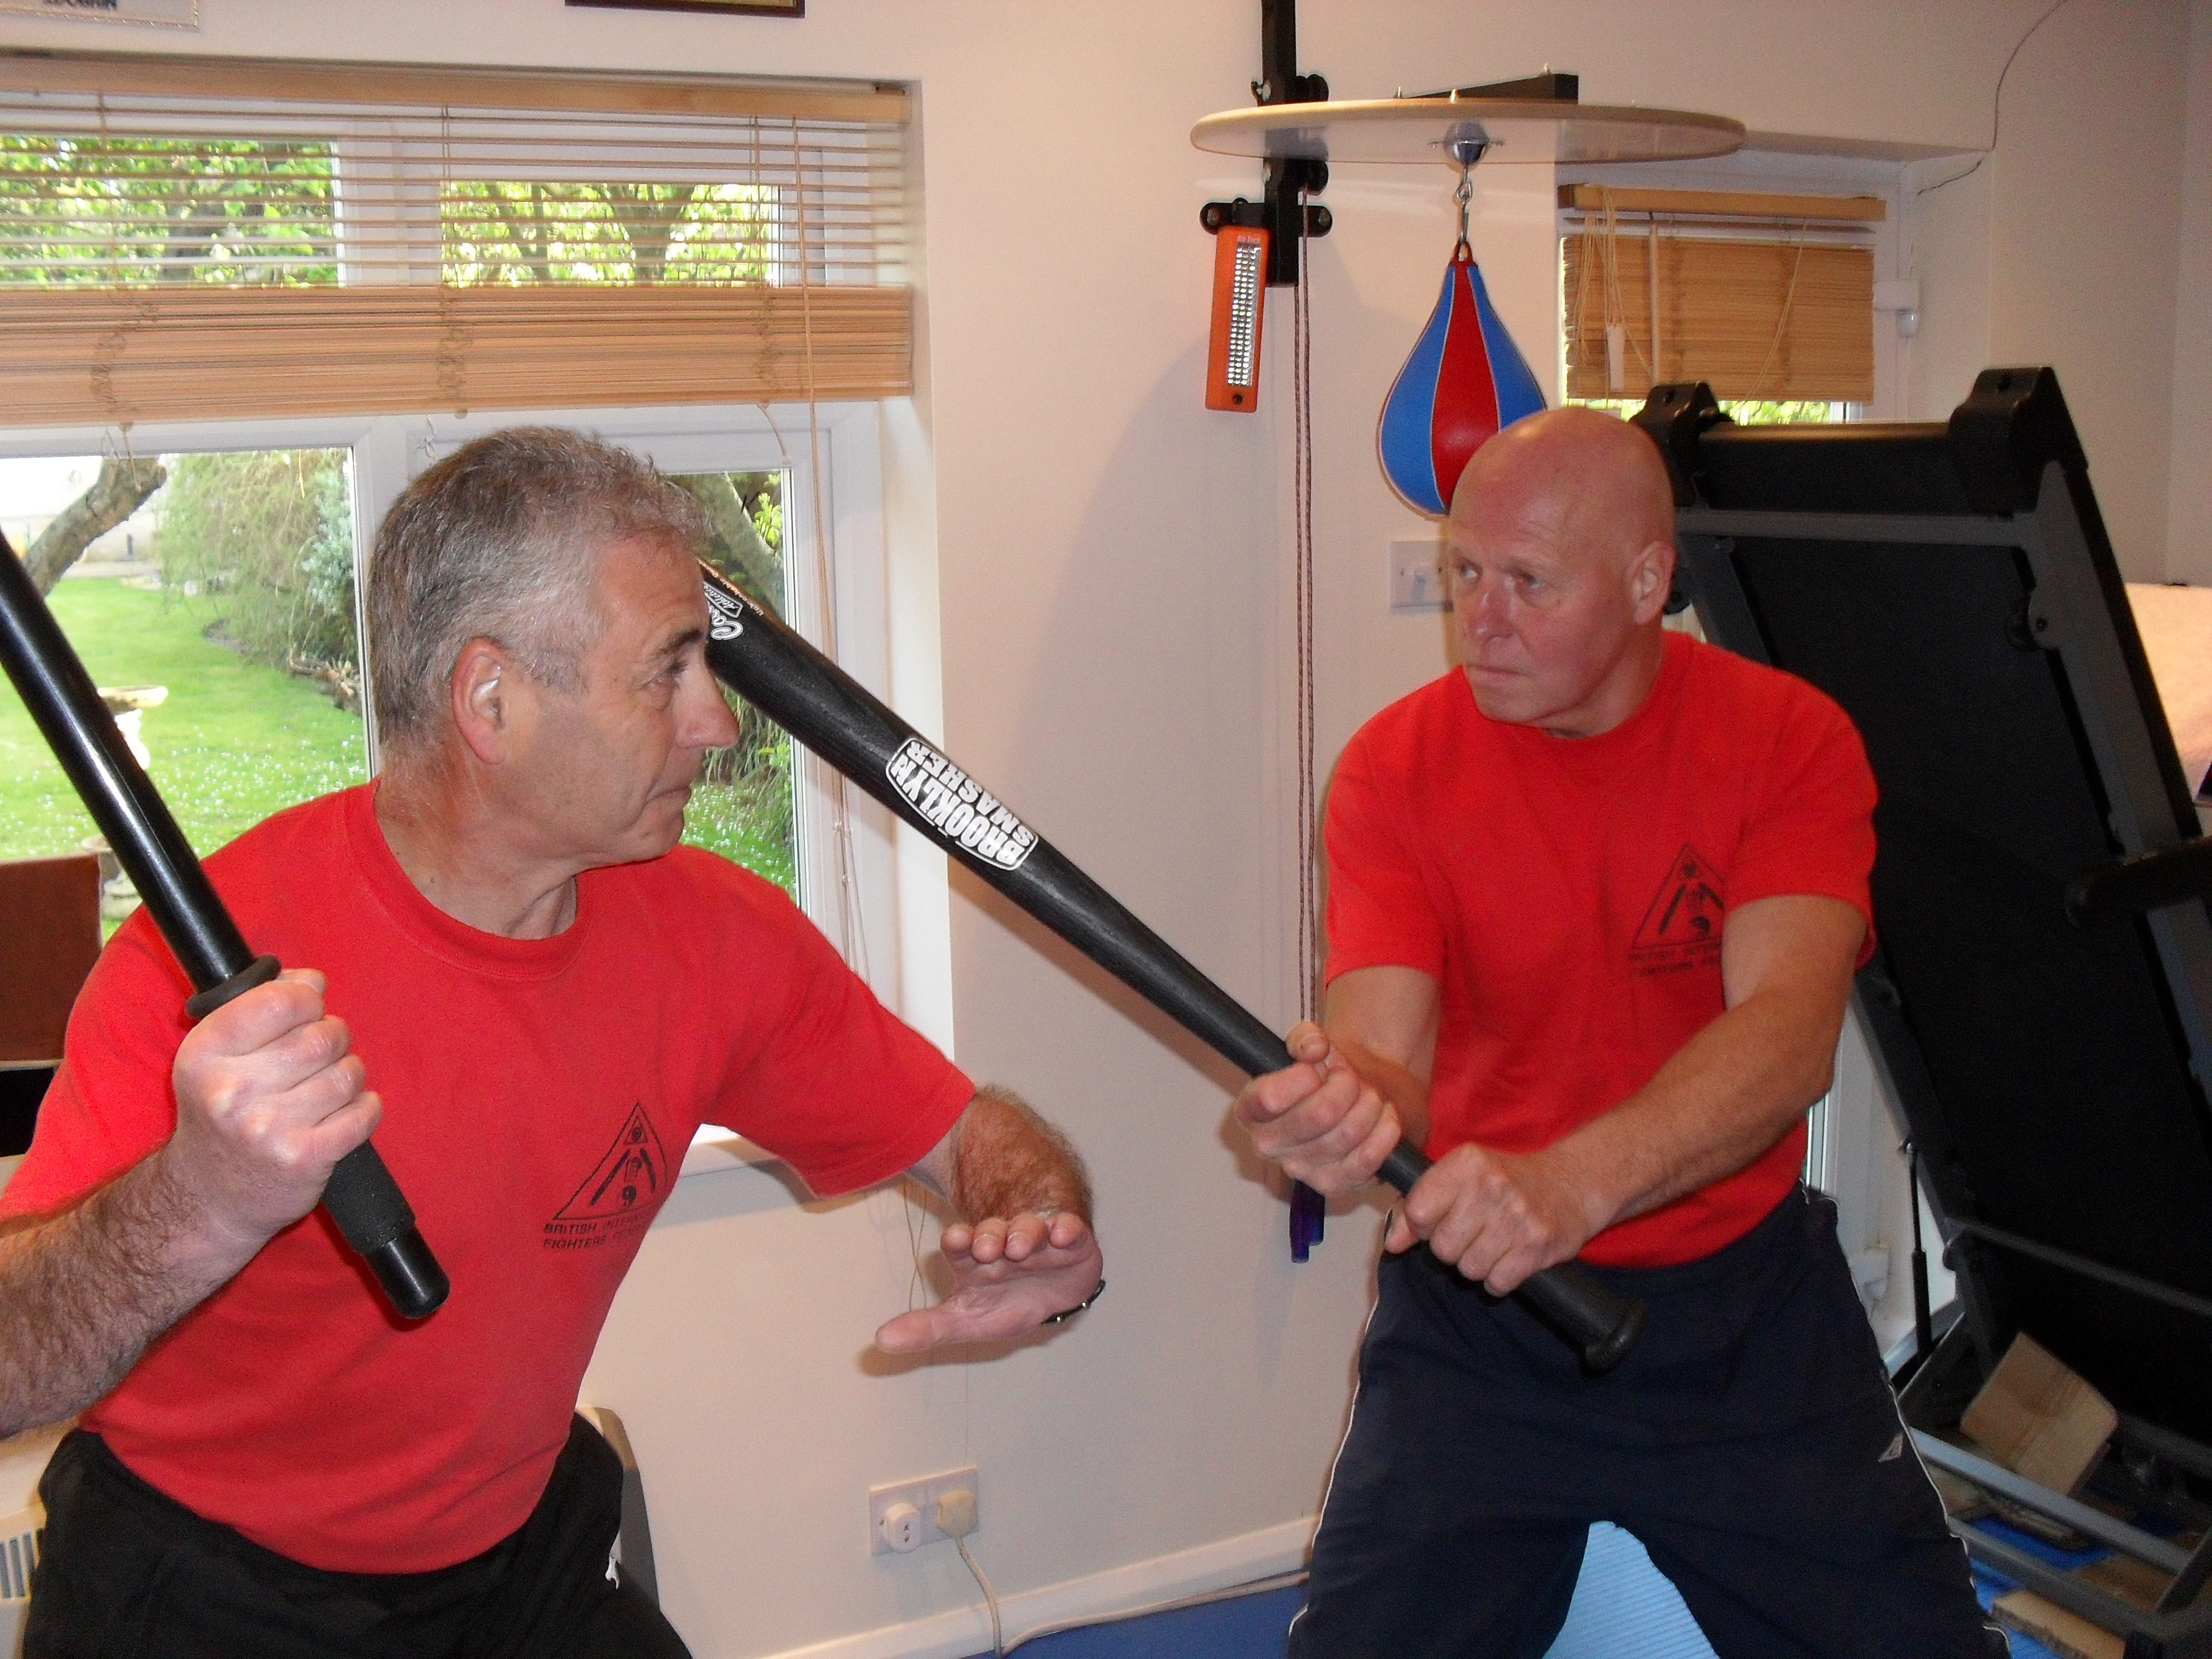 /jay dobrin and phil chenery filipino martial arts masters.